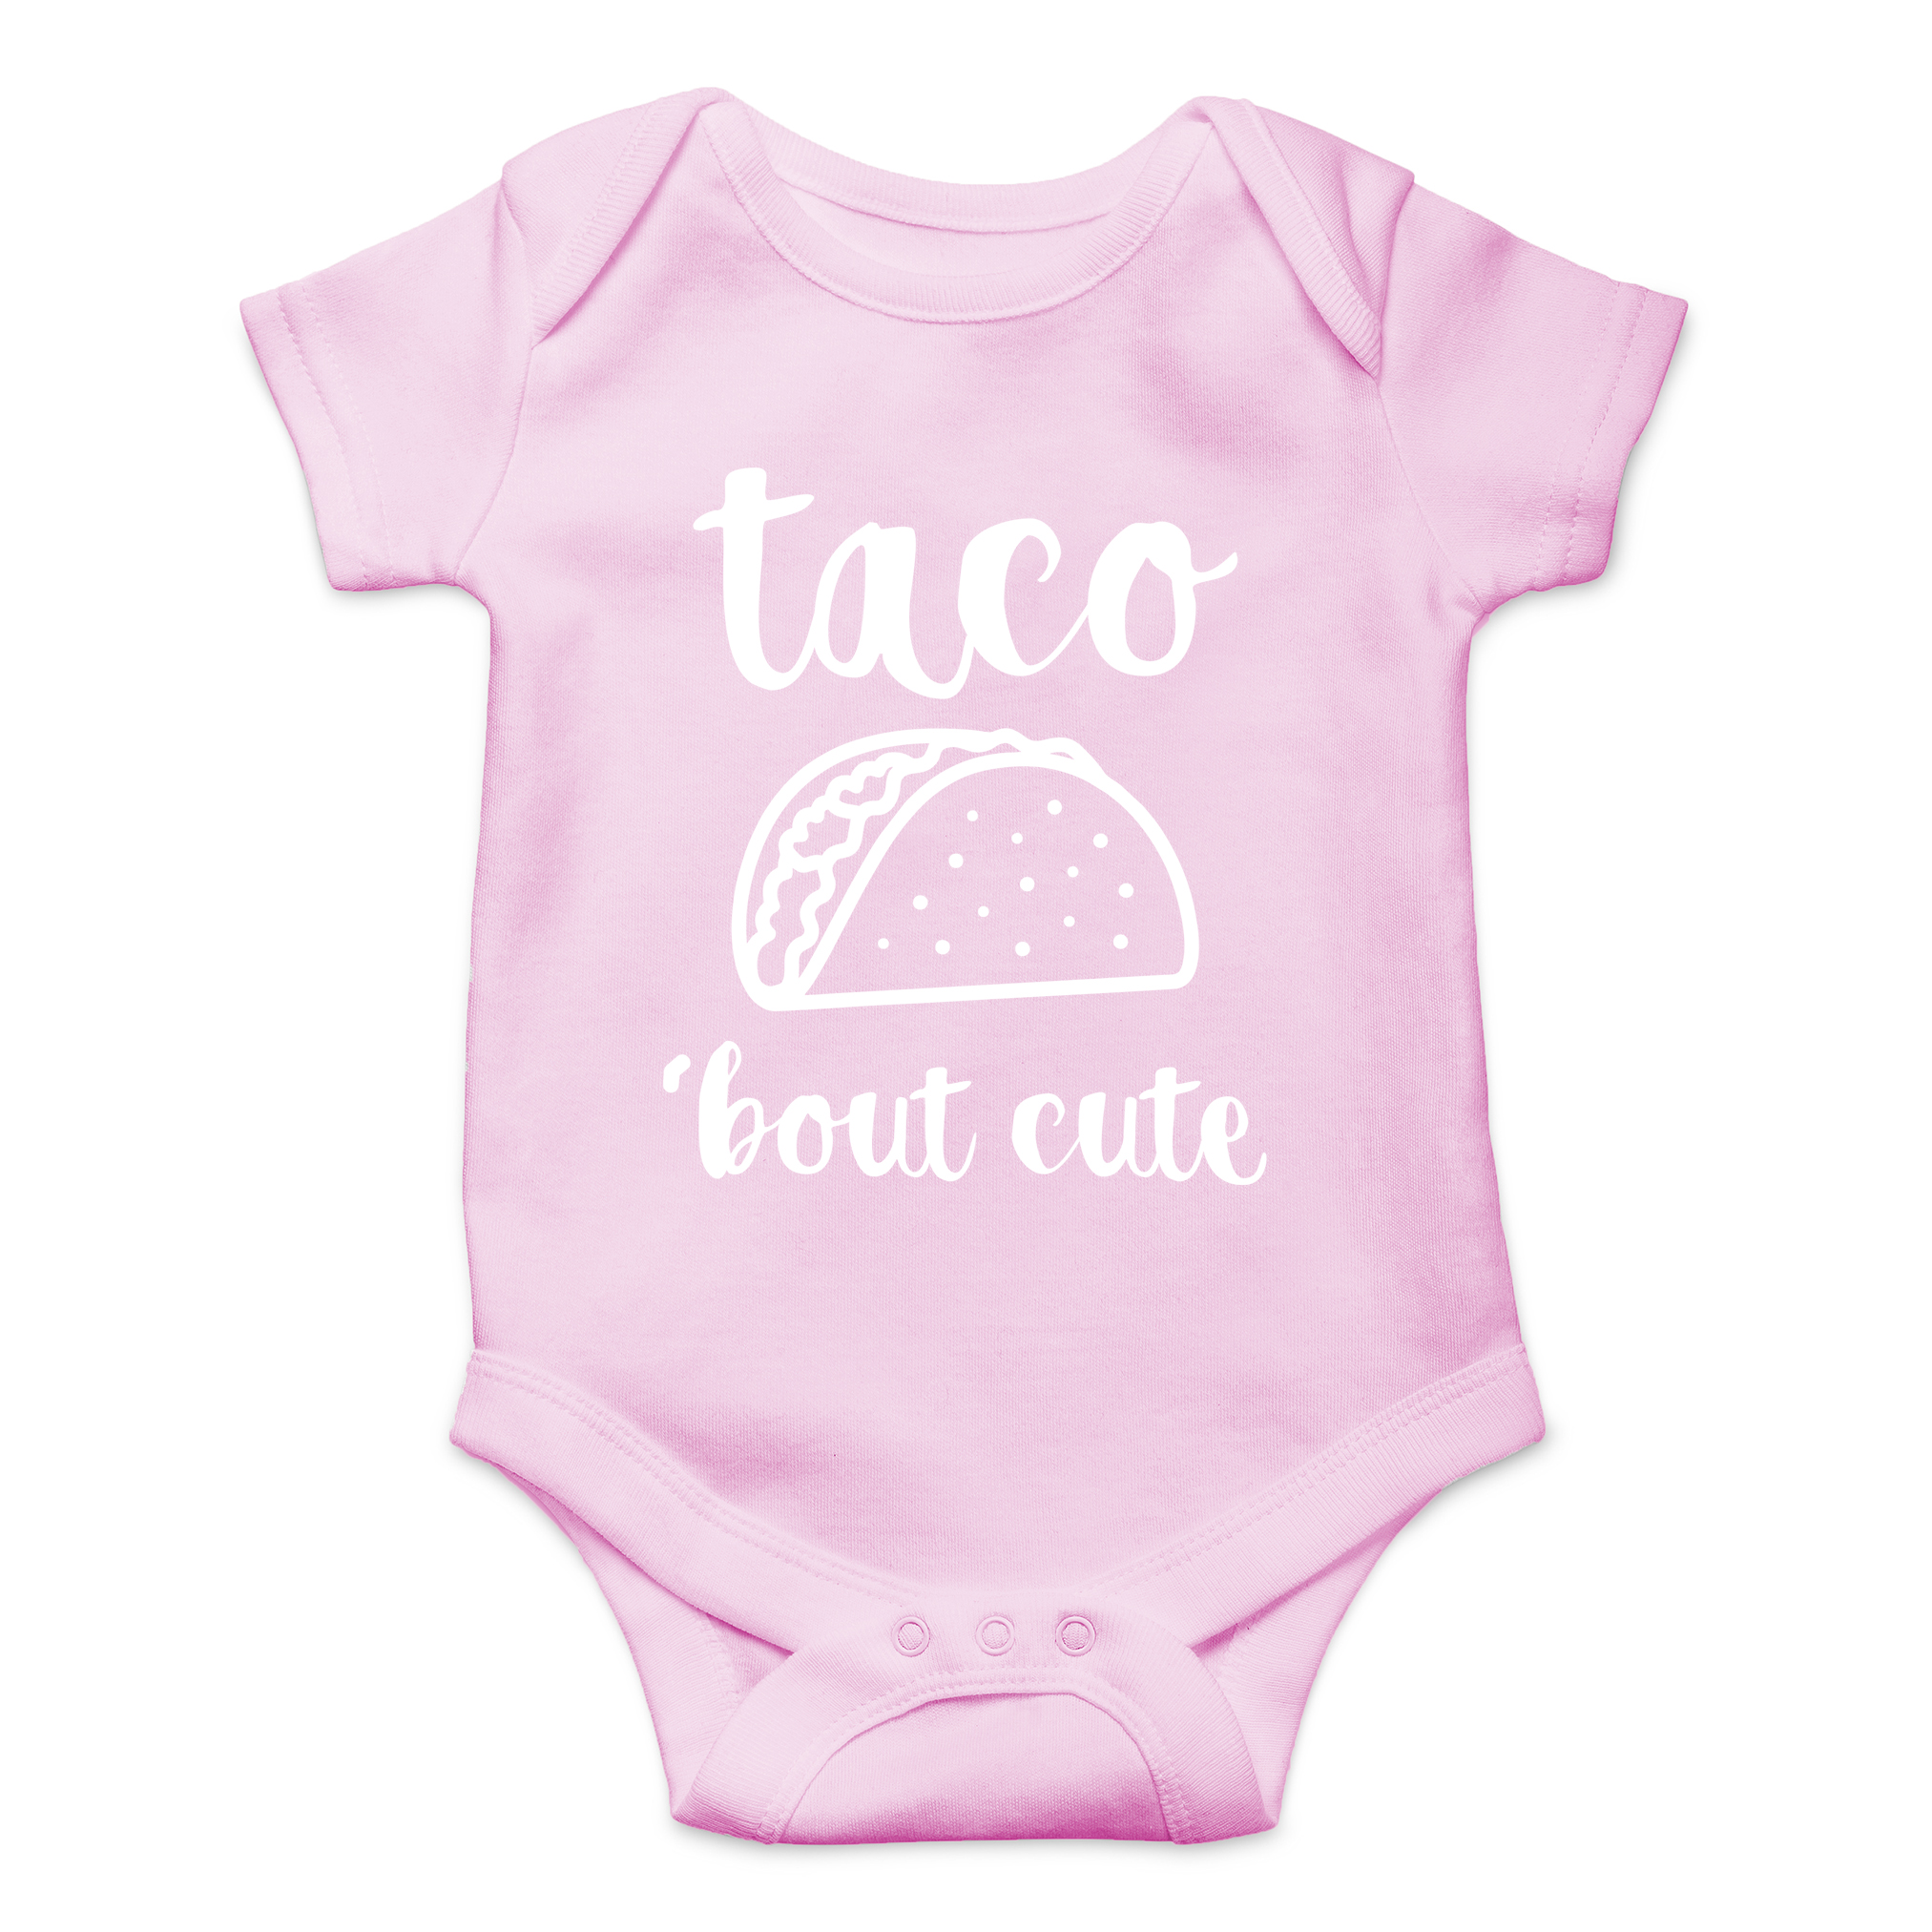 Funny Baby Baby Bodysuit Dog Lover Gift Cool Baby My Best Friend Has Four Paws Baby One-Piece Bodysuit Baby Shower Gift Baby One-Piece